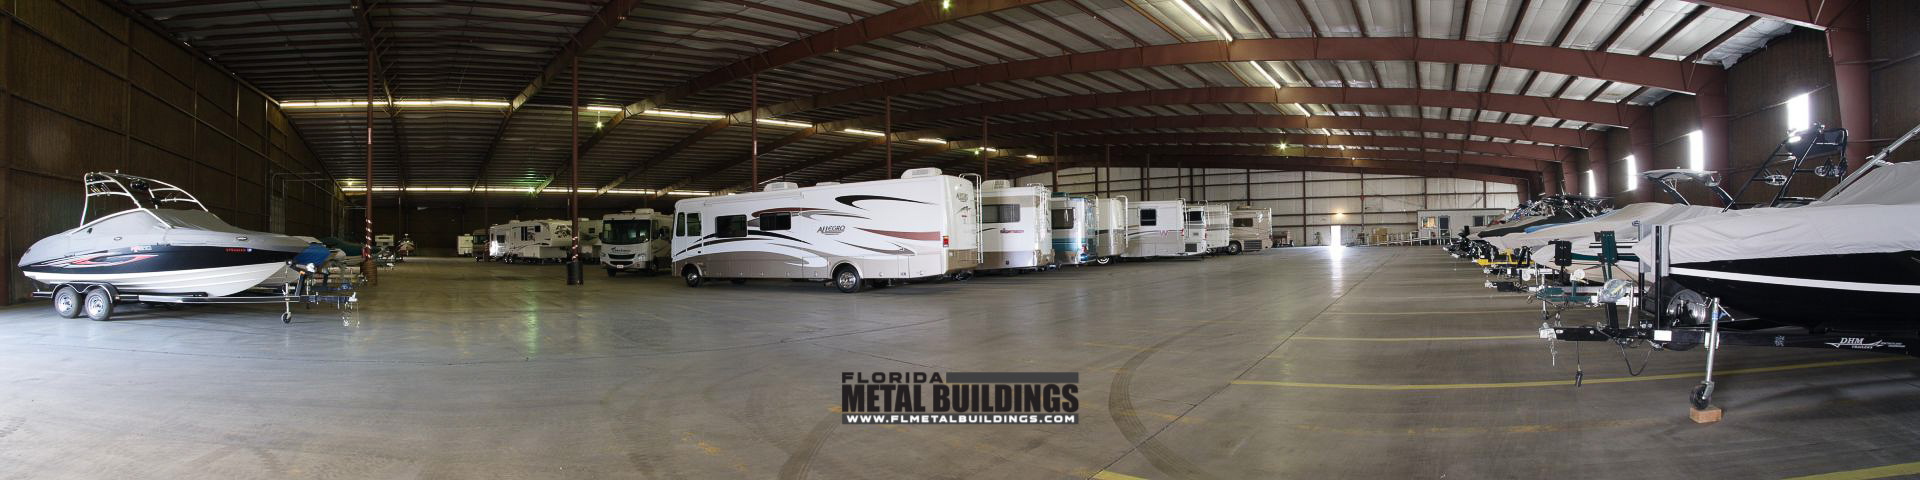 Let Fmbs Help You Design And Build Your Next Self Storage Or Rv Boat Project We Have The Knowledge Experience To Make A Reality